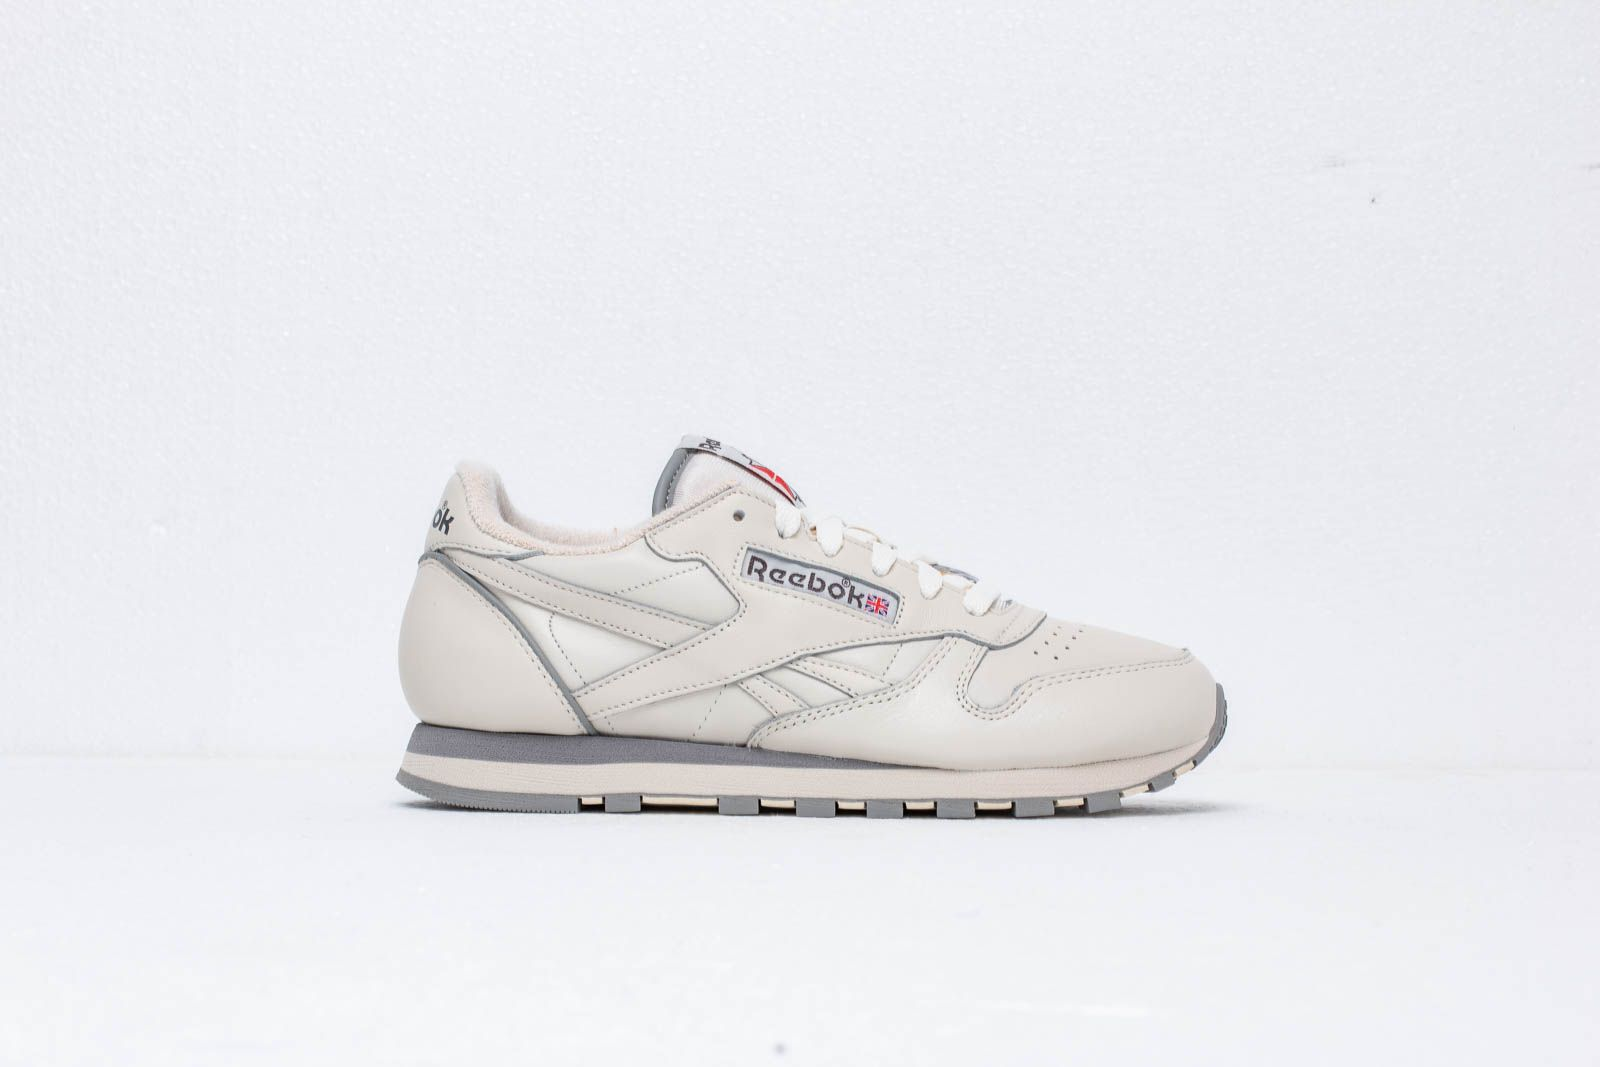 e67e44c6c Reebok Classic Leather 1983 TV Chalk  Paper White  Carbon at a great price  106